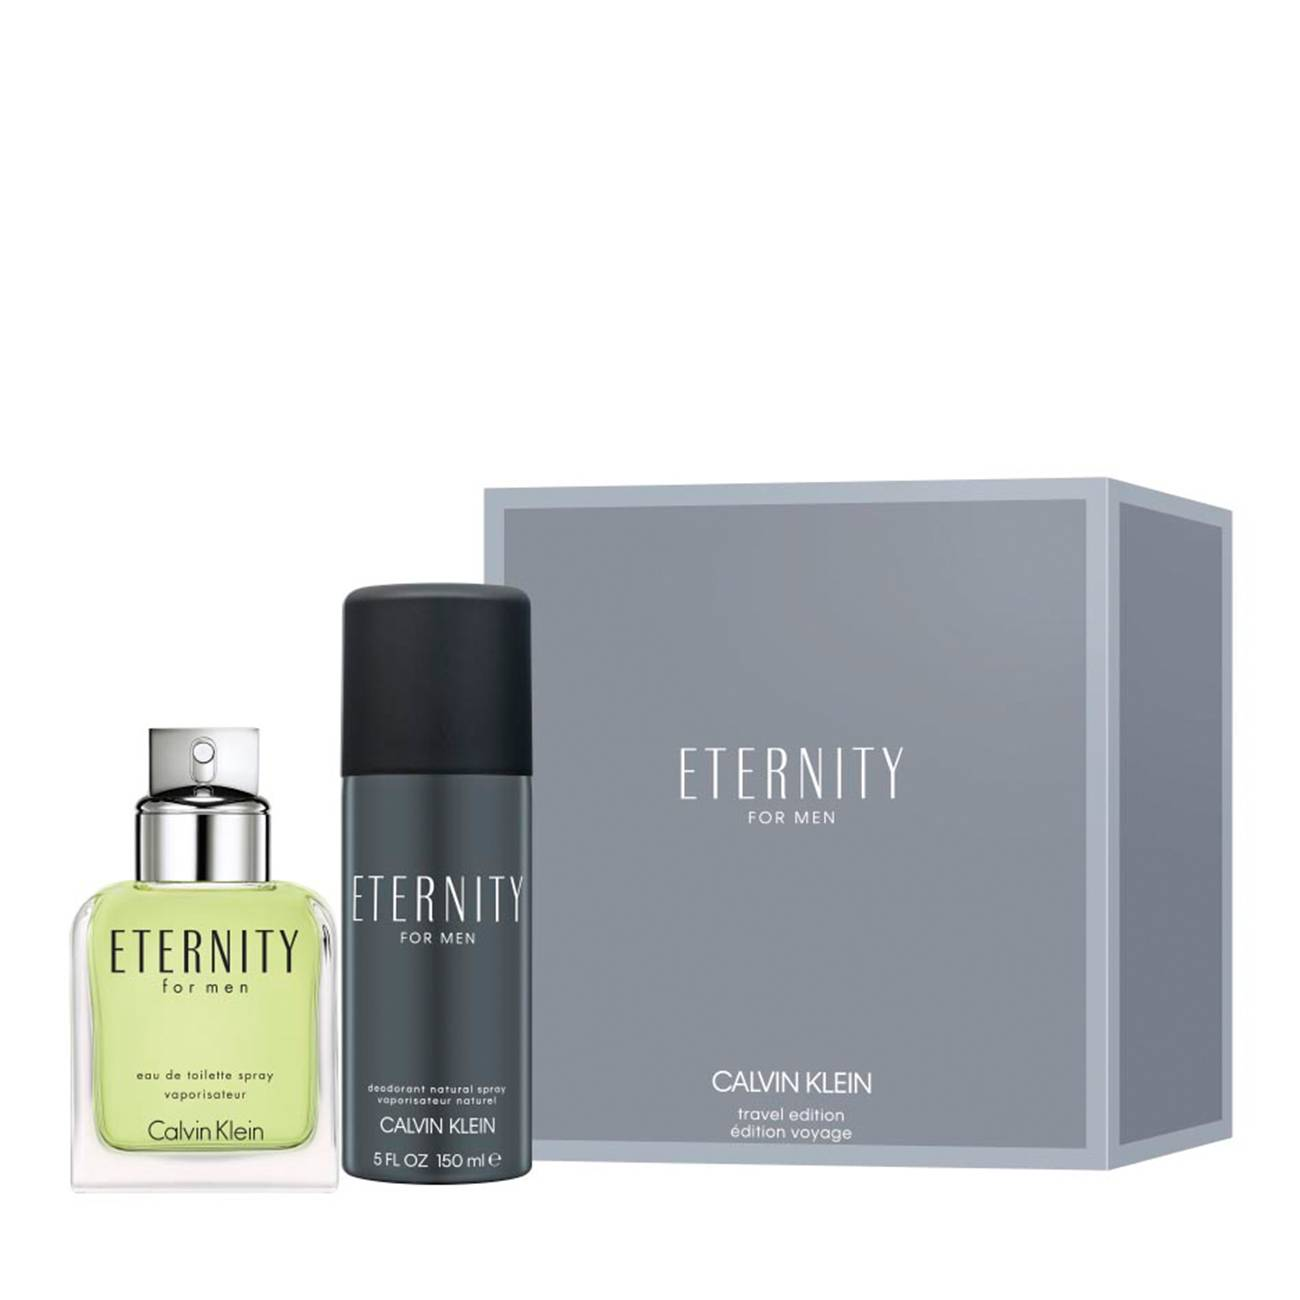 ETERNITY FOR MEN SET 250ml imagine